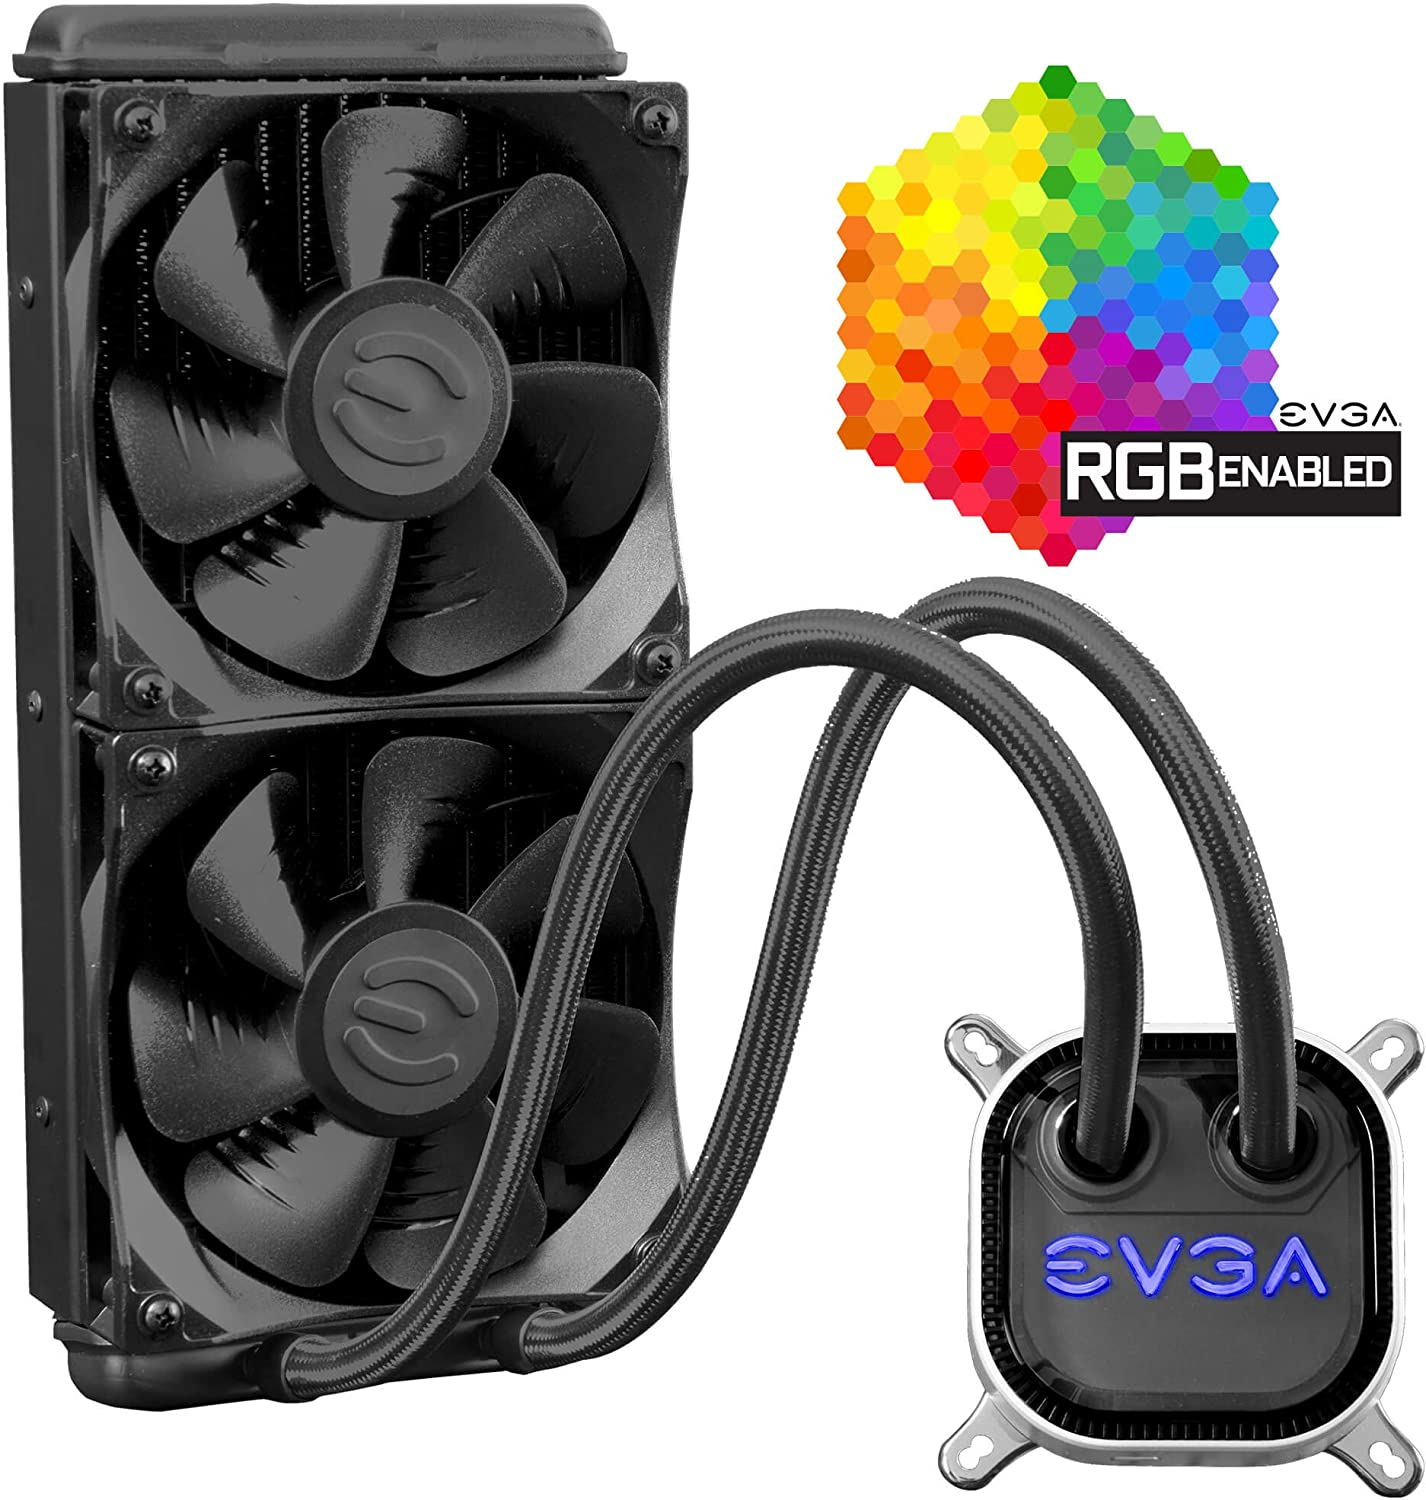 EVGA CLC 280mm All-In-One RGB LED CPU Liquid Cooler, 2x FX13 140mm PWM Fans, Intel, AMD, 5 YR Warranty, 400-HY-CL28-V1